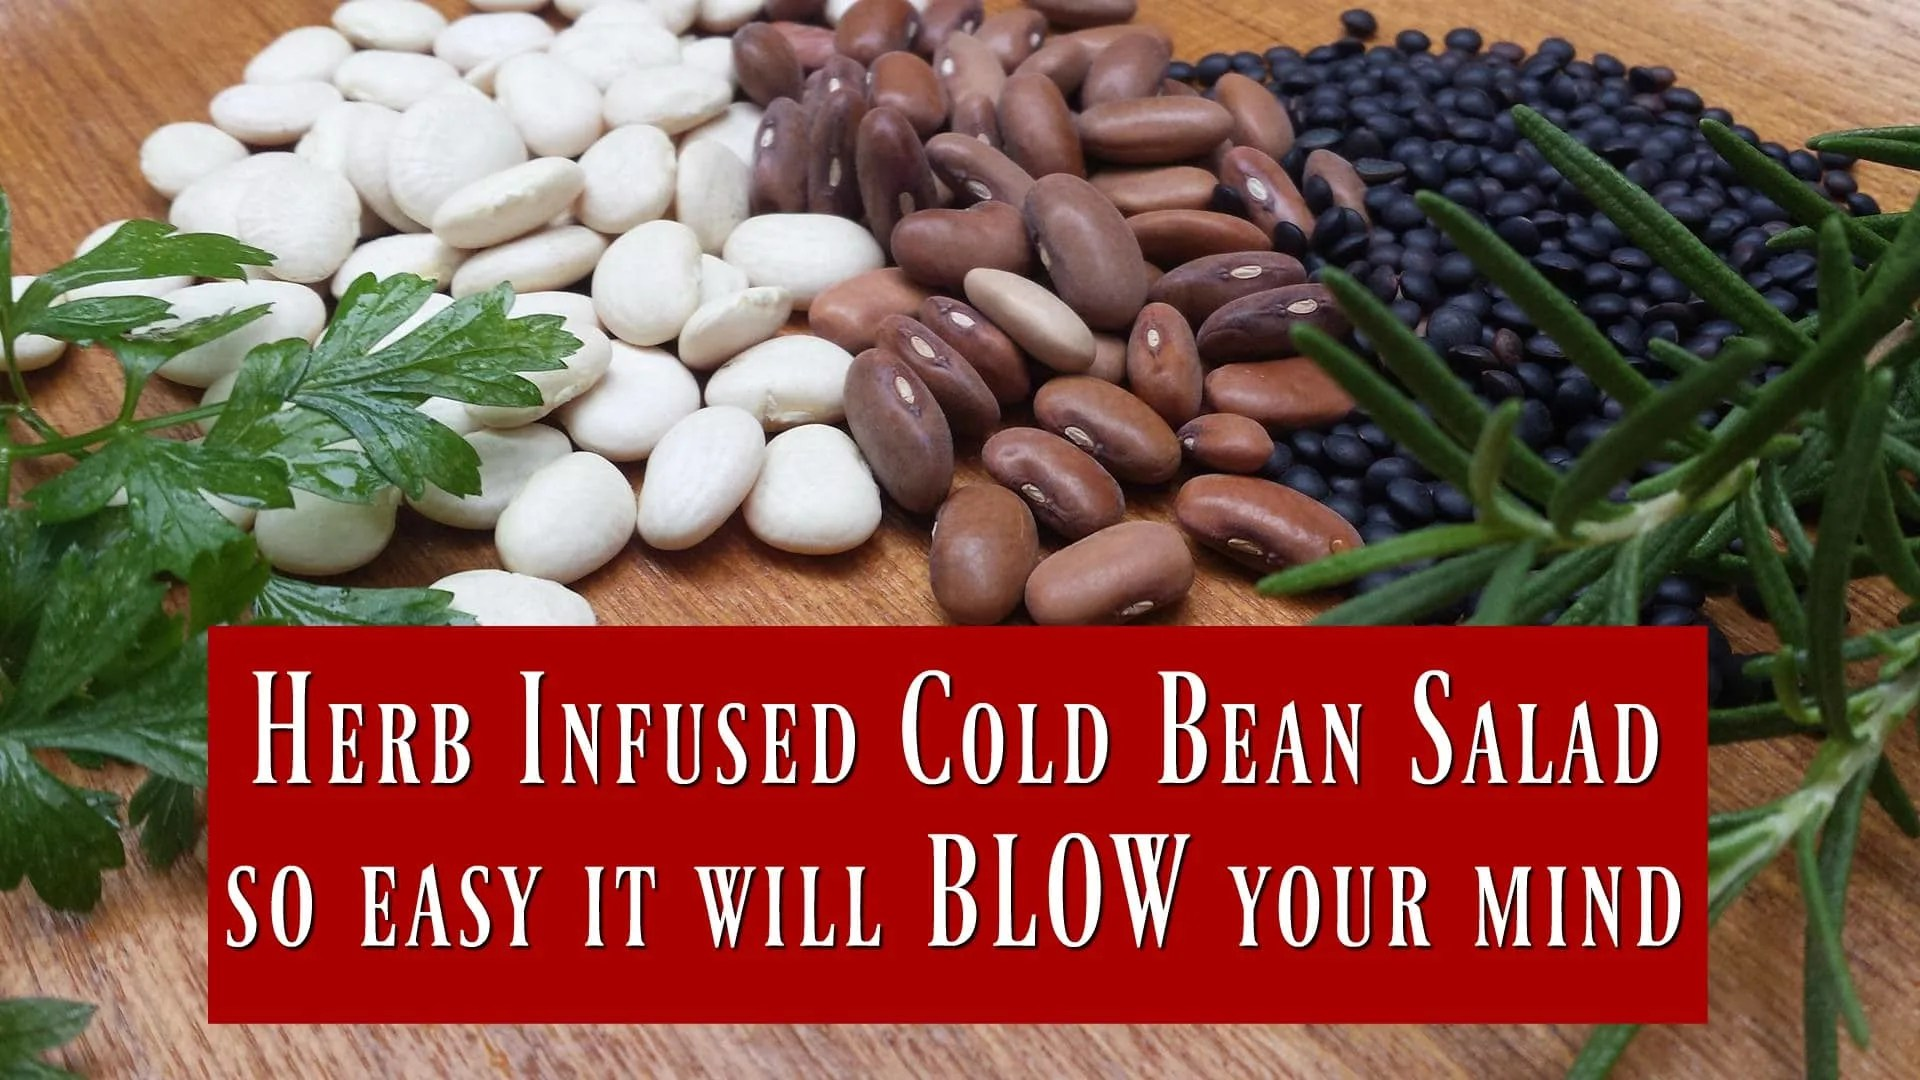 Herb Infused Cold Bean Salad- Se easy it will BLOW your mind!